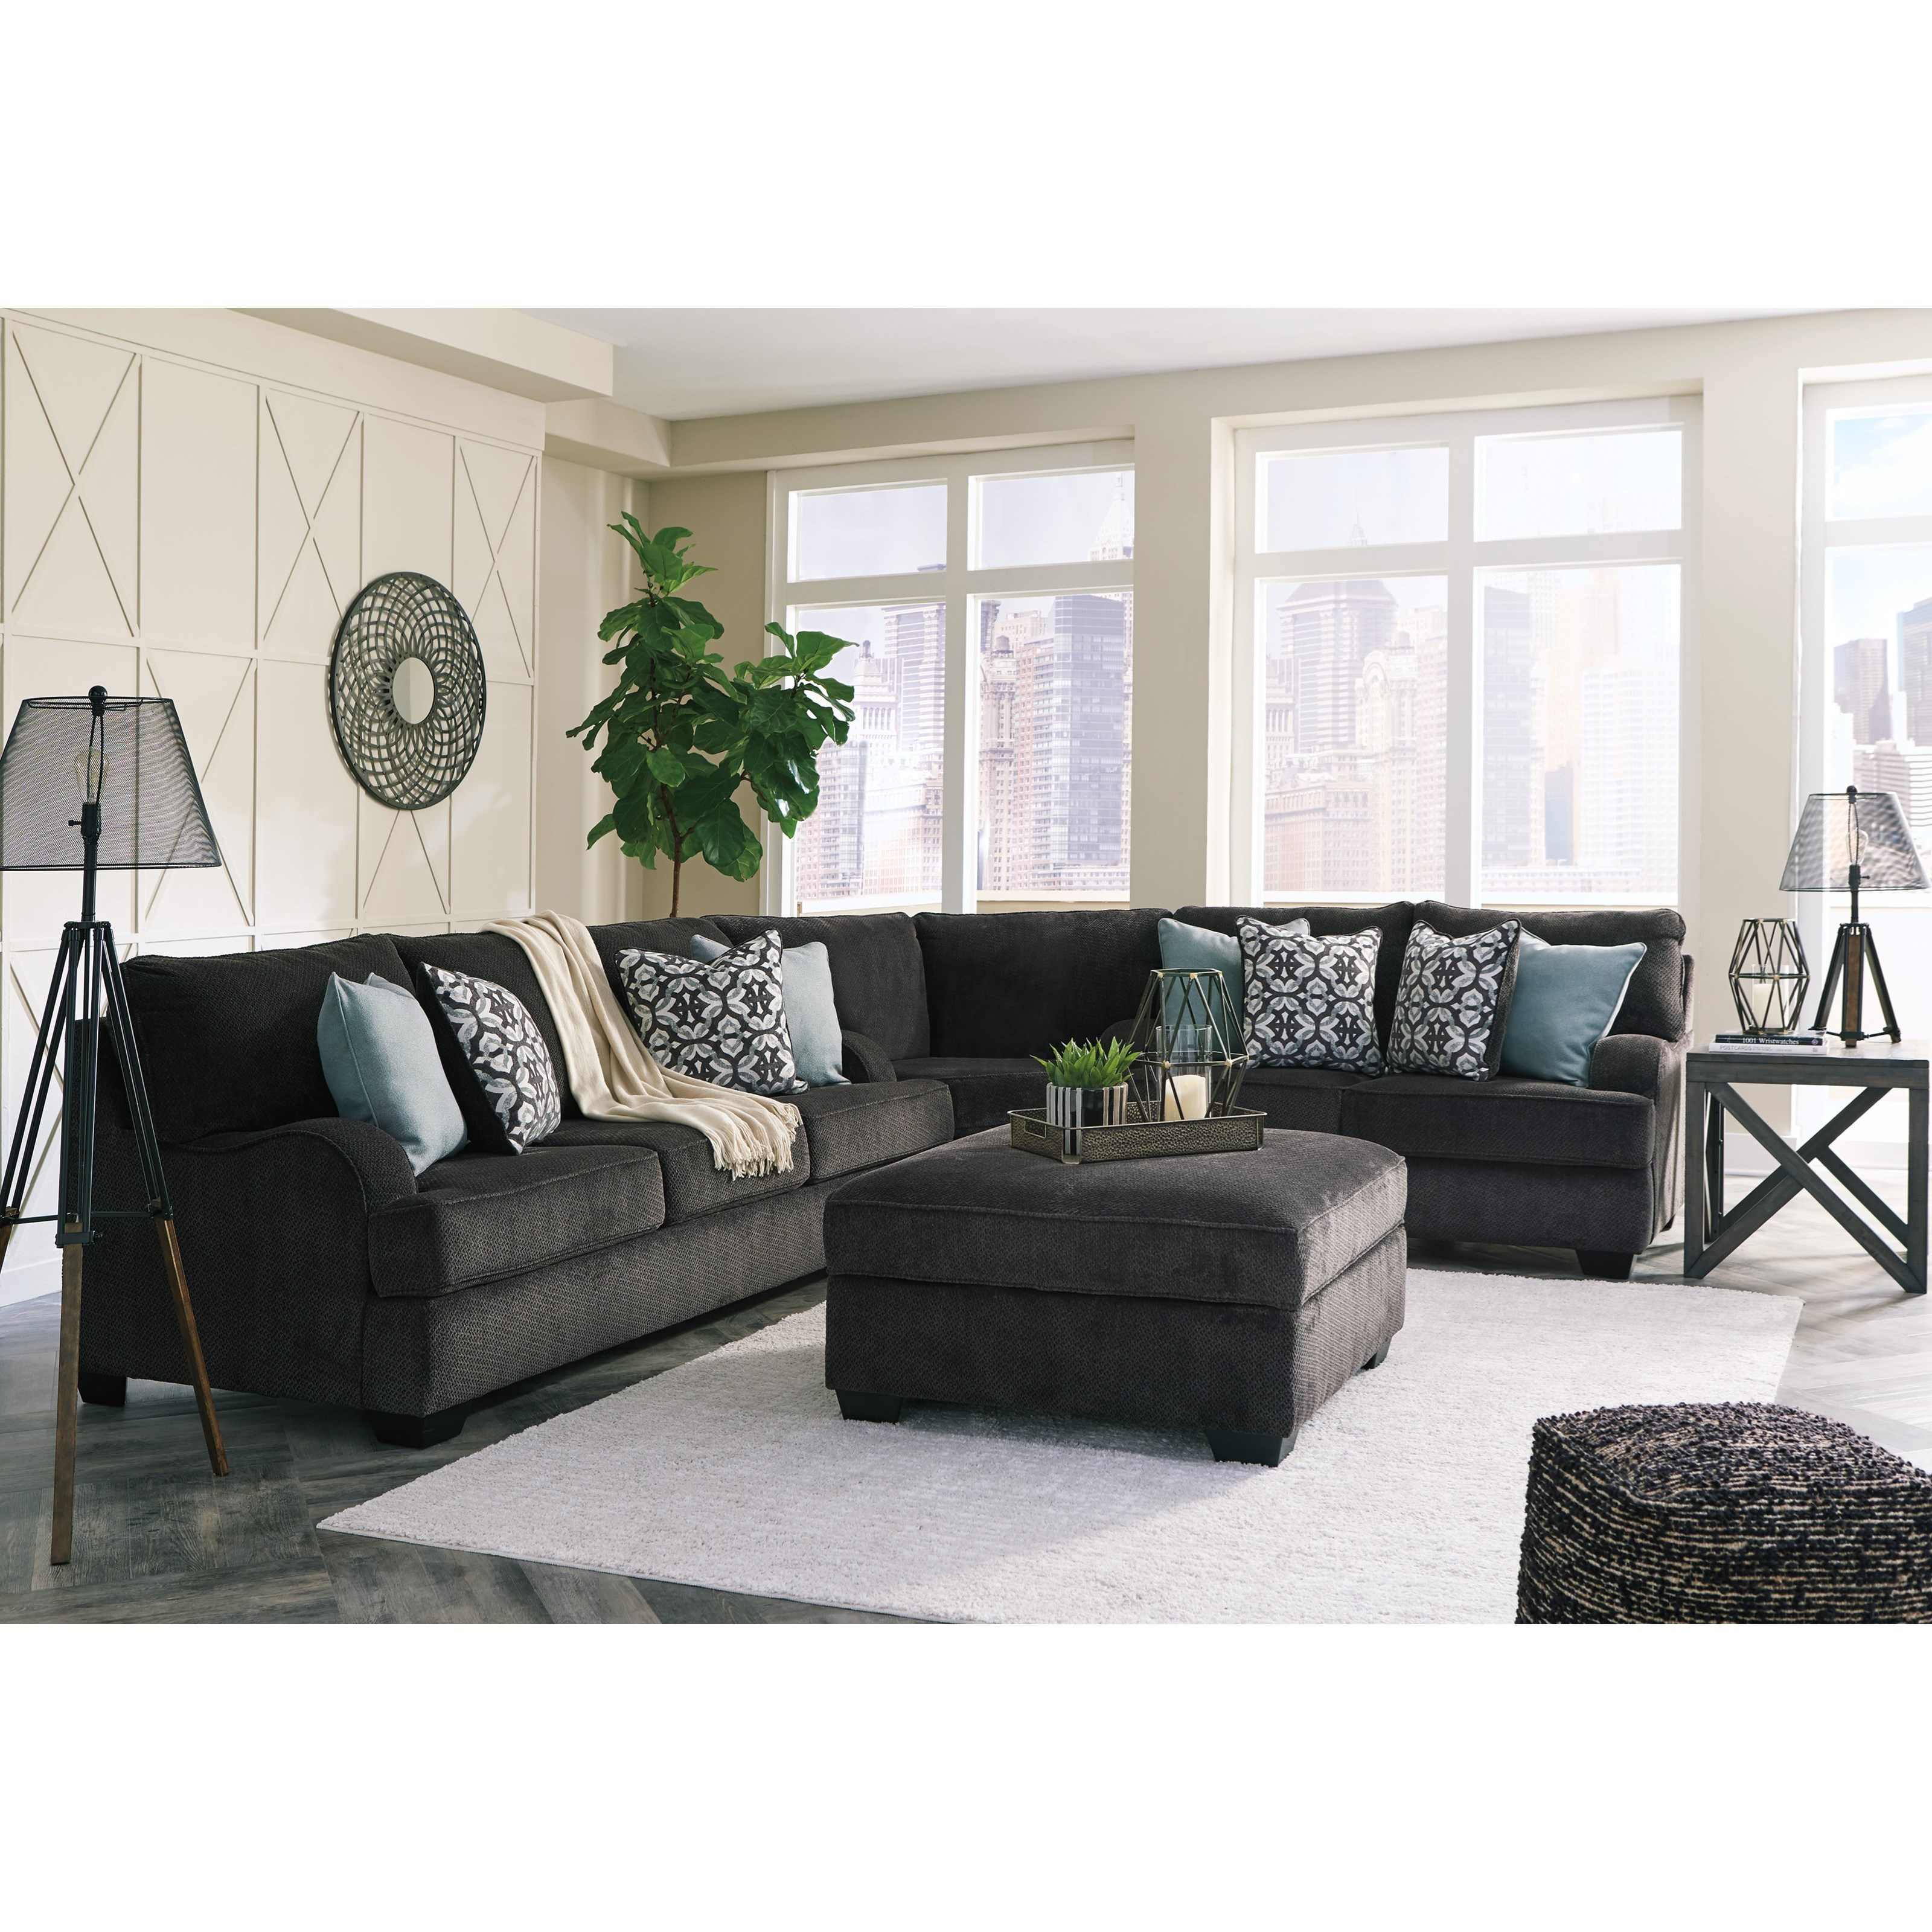 Charenton Stationary Living Room Group by Benchcraft at Miller Waldrop Furniture and Decor